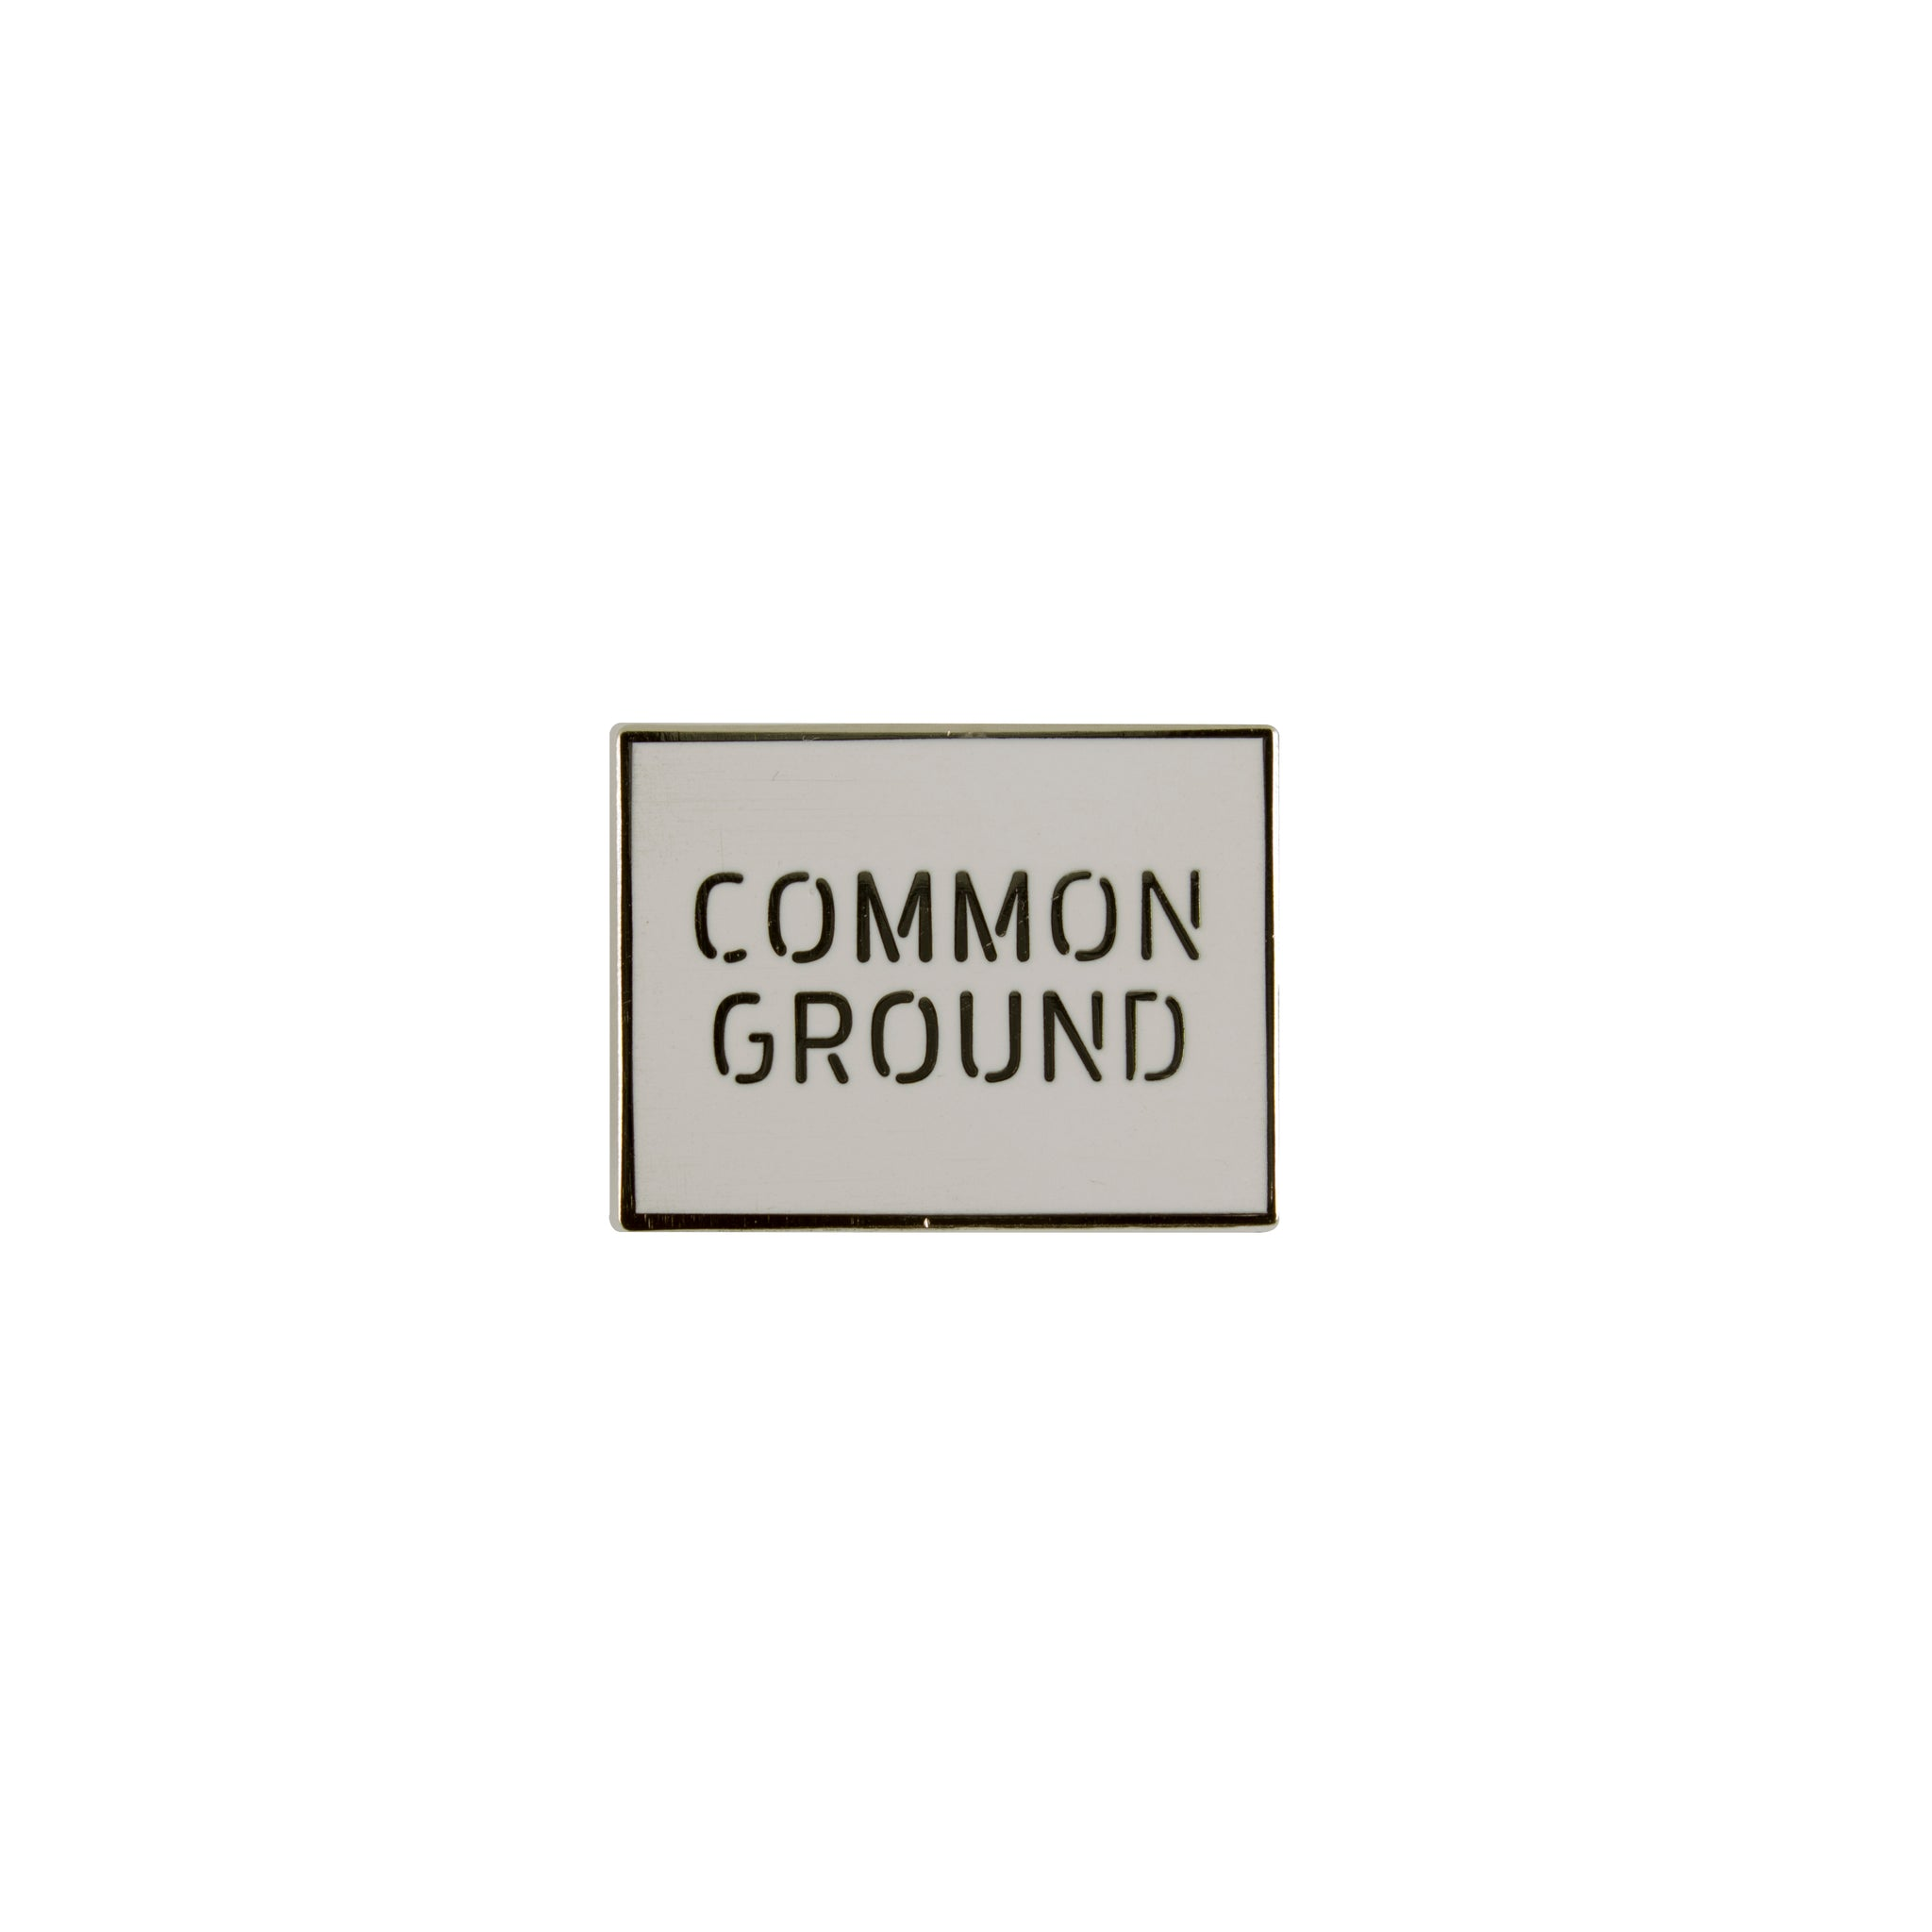 Bright_White - Common Ground Pin Front View